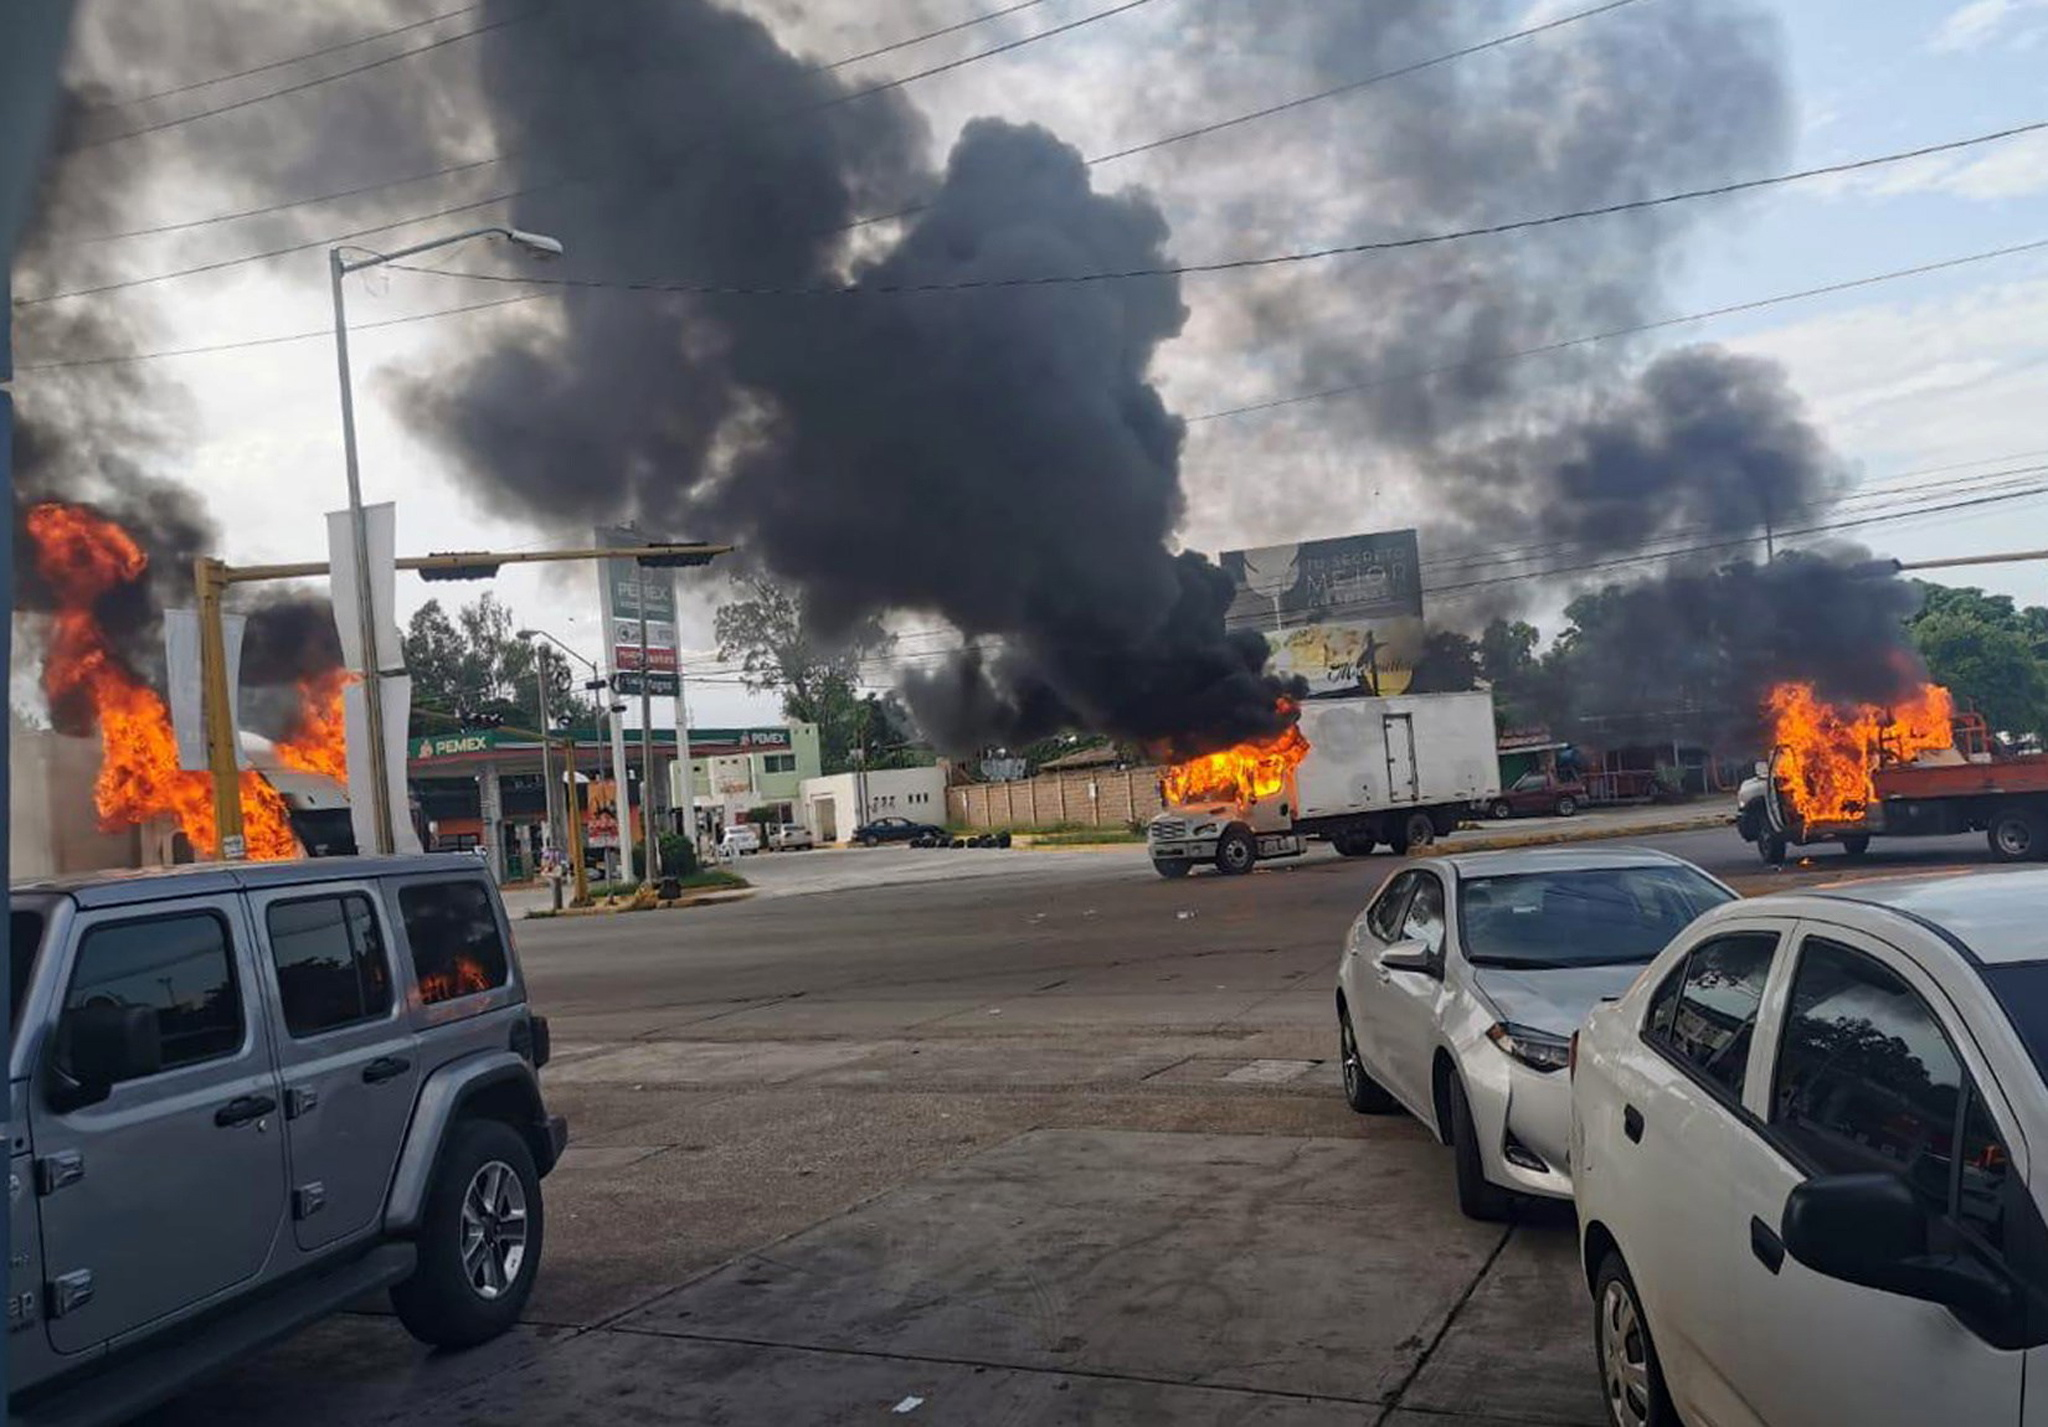 Vehicles on fire during a clash between armed gunmen and Federal police and military soldiers, in the streets of the city of Culiacan, Sinaloa state, Mexico.